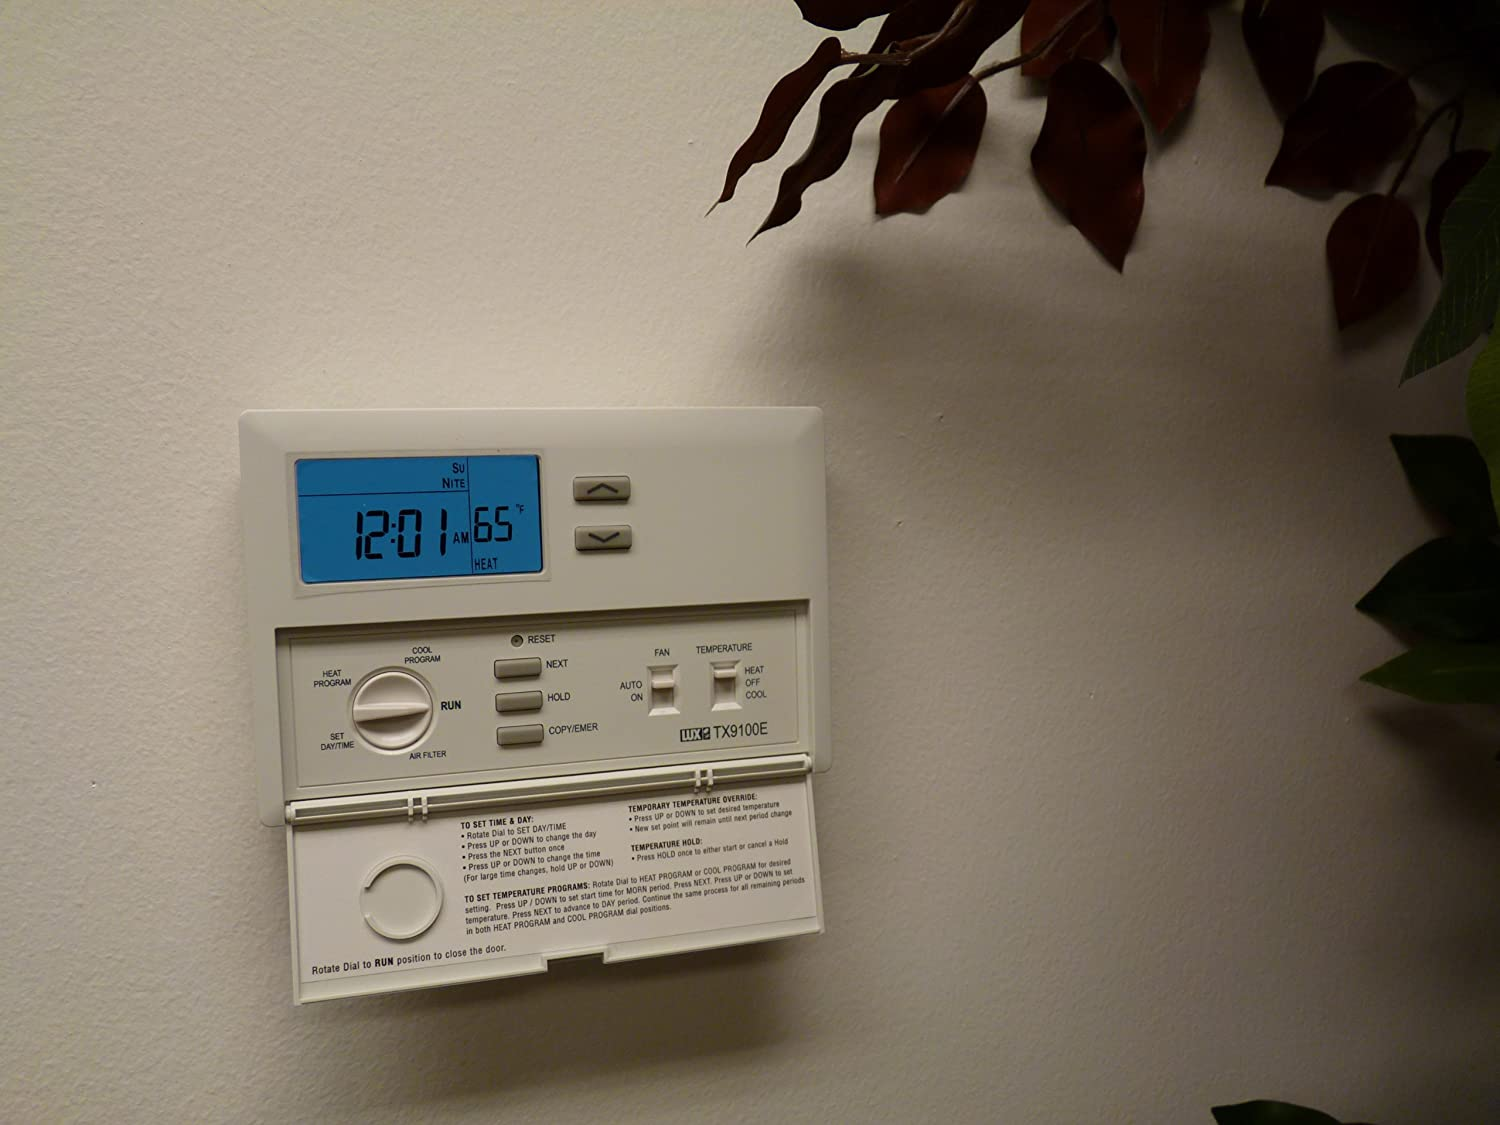 81HybGgfhbL._SL1500_ lux tx9100e 7 day universal programmable thermostat locking  at bakdesigns.co